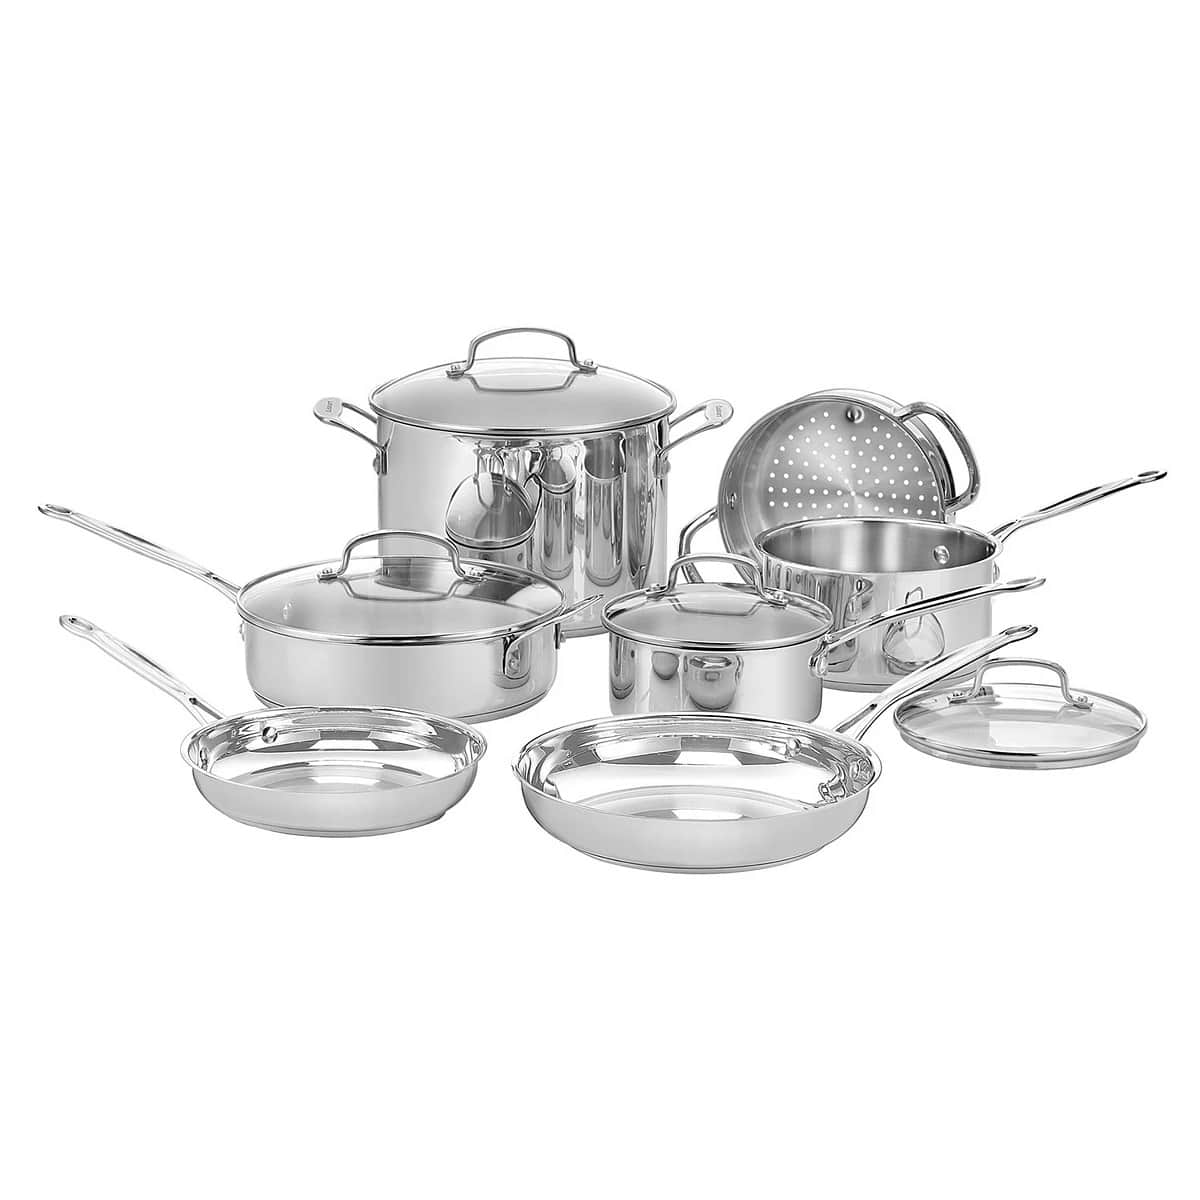 Cuisinart® Chef's Classic™ 11-Pc. Stainless Steel Cookware Set - $115.59 (kohl's ) +free shipping